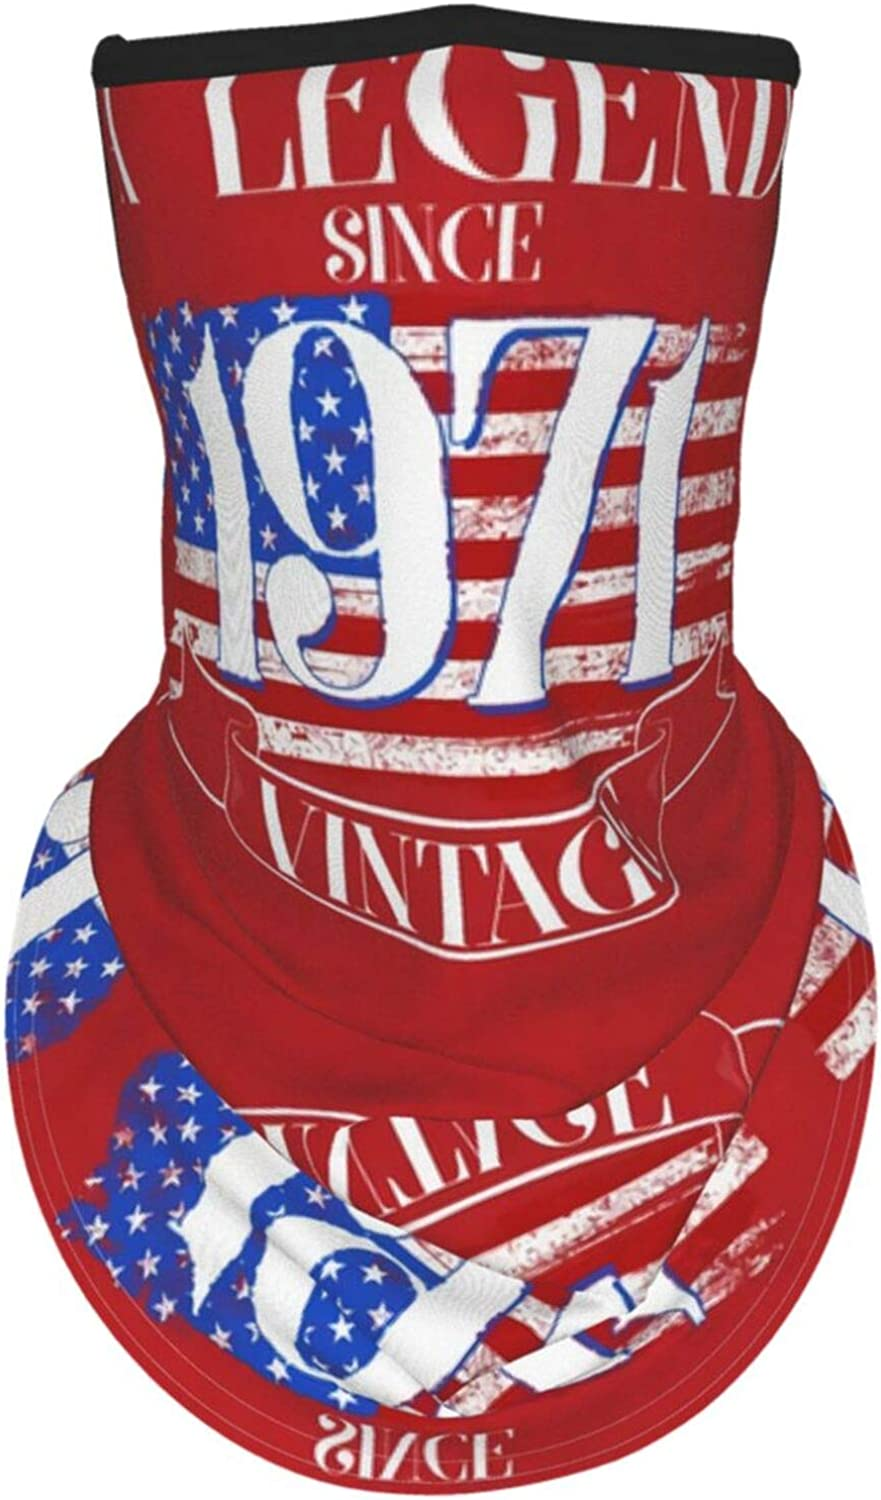 Ear Hangers Face Balaclava 50th Birthday Legend Since 1971 Vintage Usa Flag Red Protective Cover Wristband Bandanas Neck Gaiter Dust-Proof,Anti-Pungent Gas,Washable